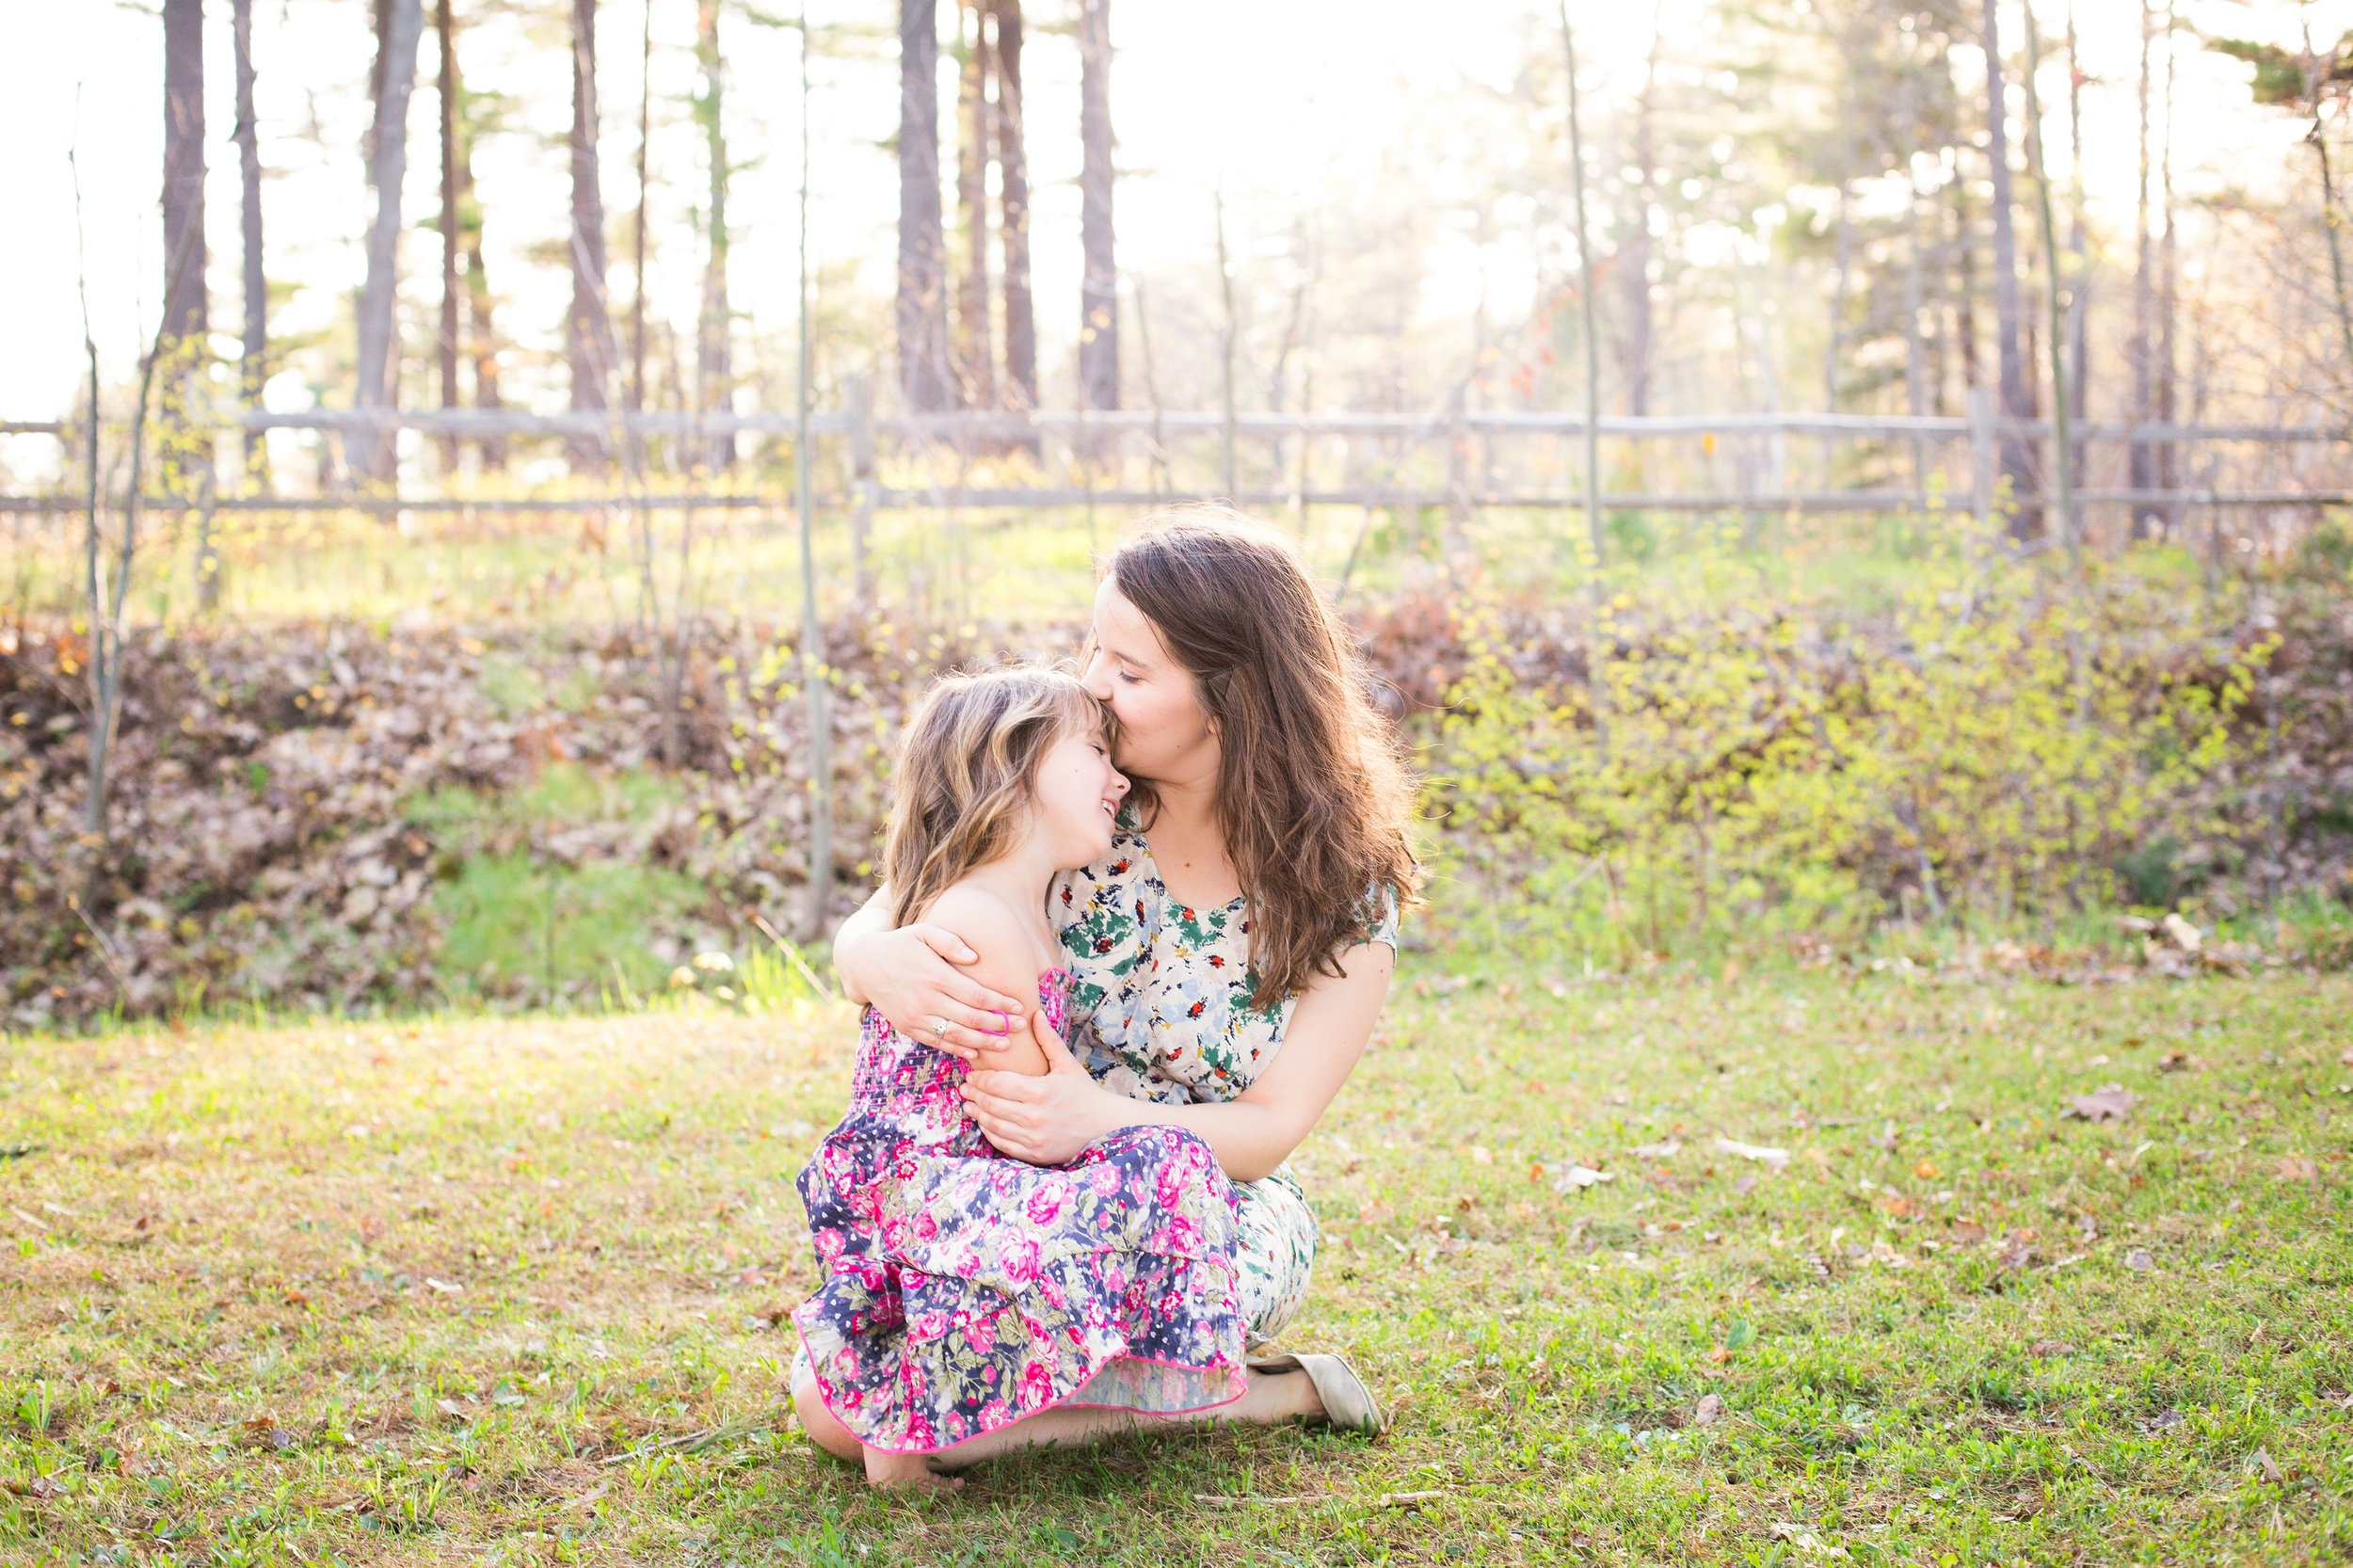 Mommy and Me sweet and fun outdoor portrait session by Seattle Photographer Janelle Elaine Photography.jpg